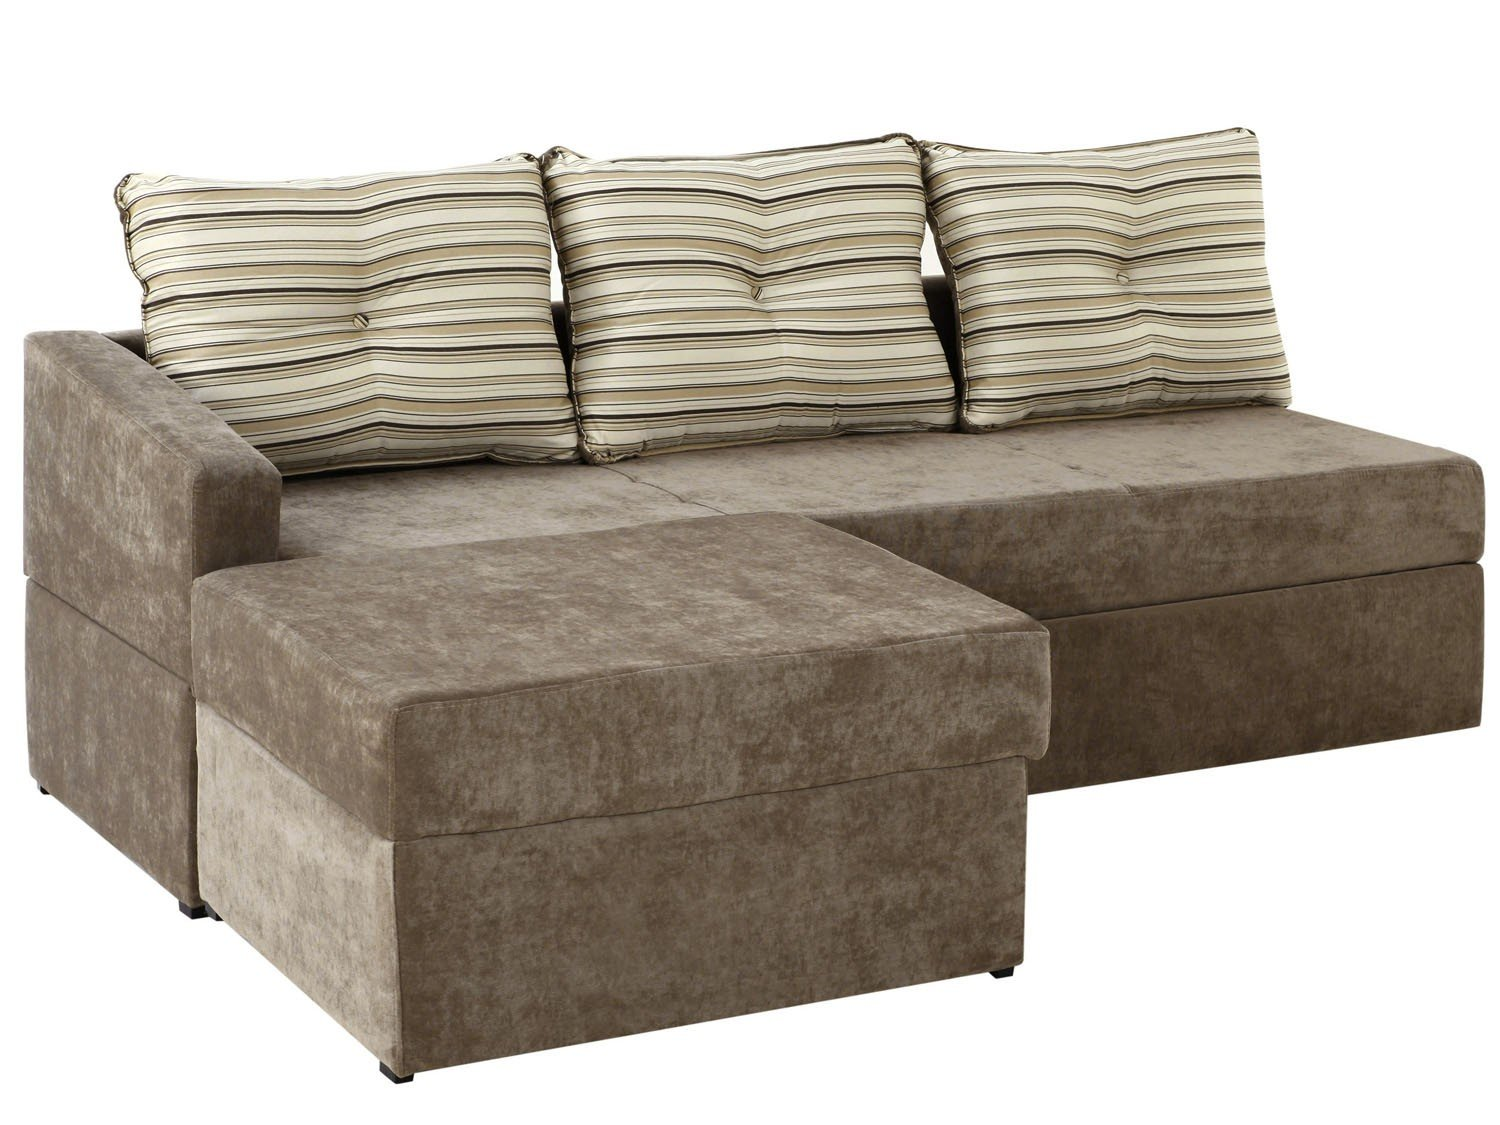 Top sofa cama casal wallpapers for Chaise lounge cama